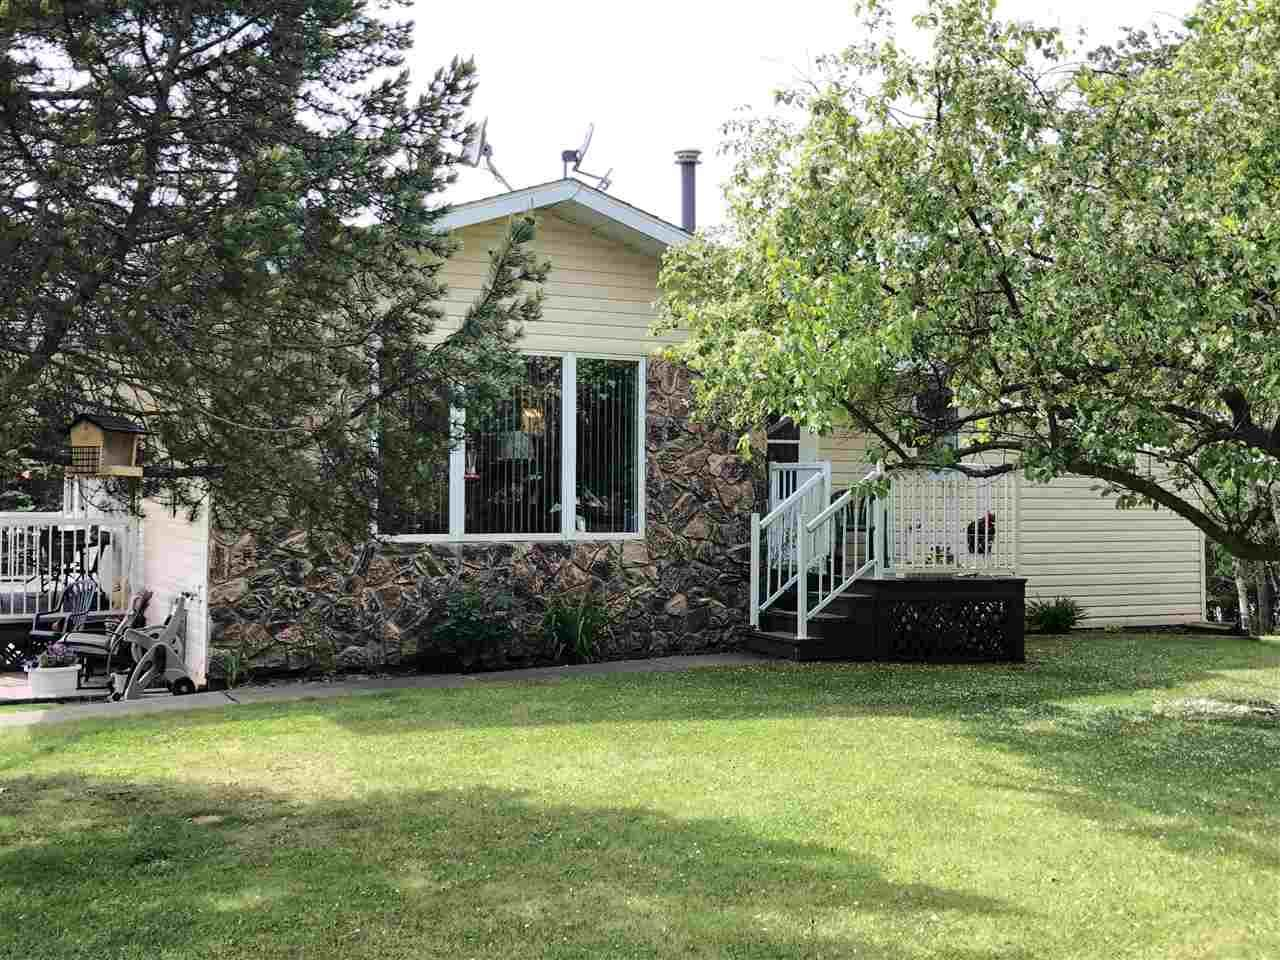 Main Photo: 27132A TWP RD 632: Rural Westlock County House for sale : MLS®# E4231004